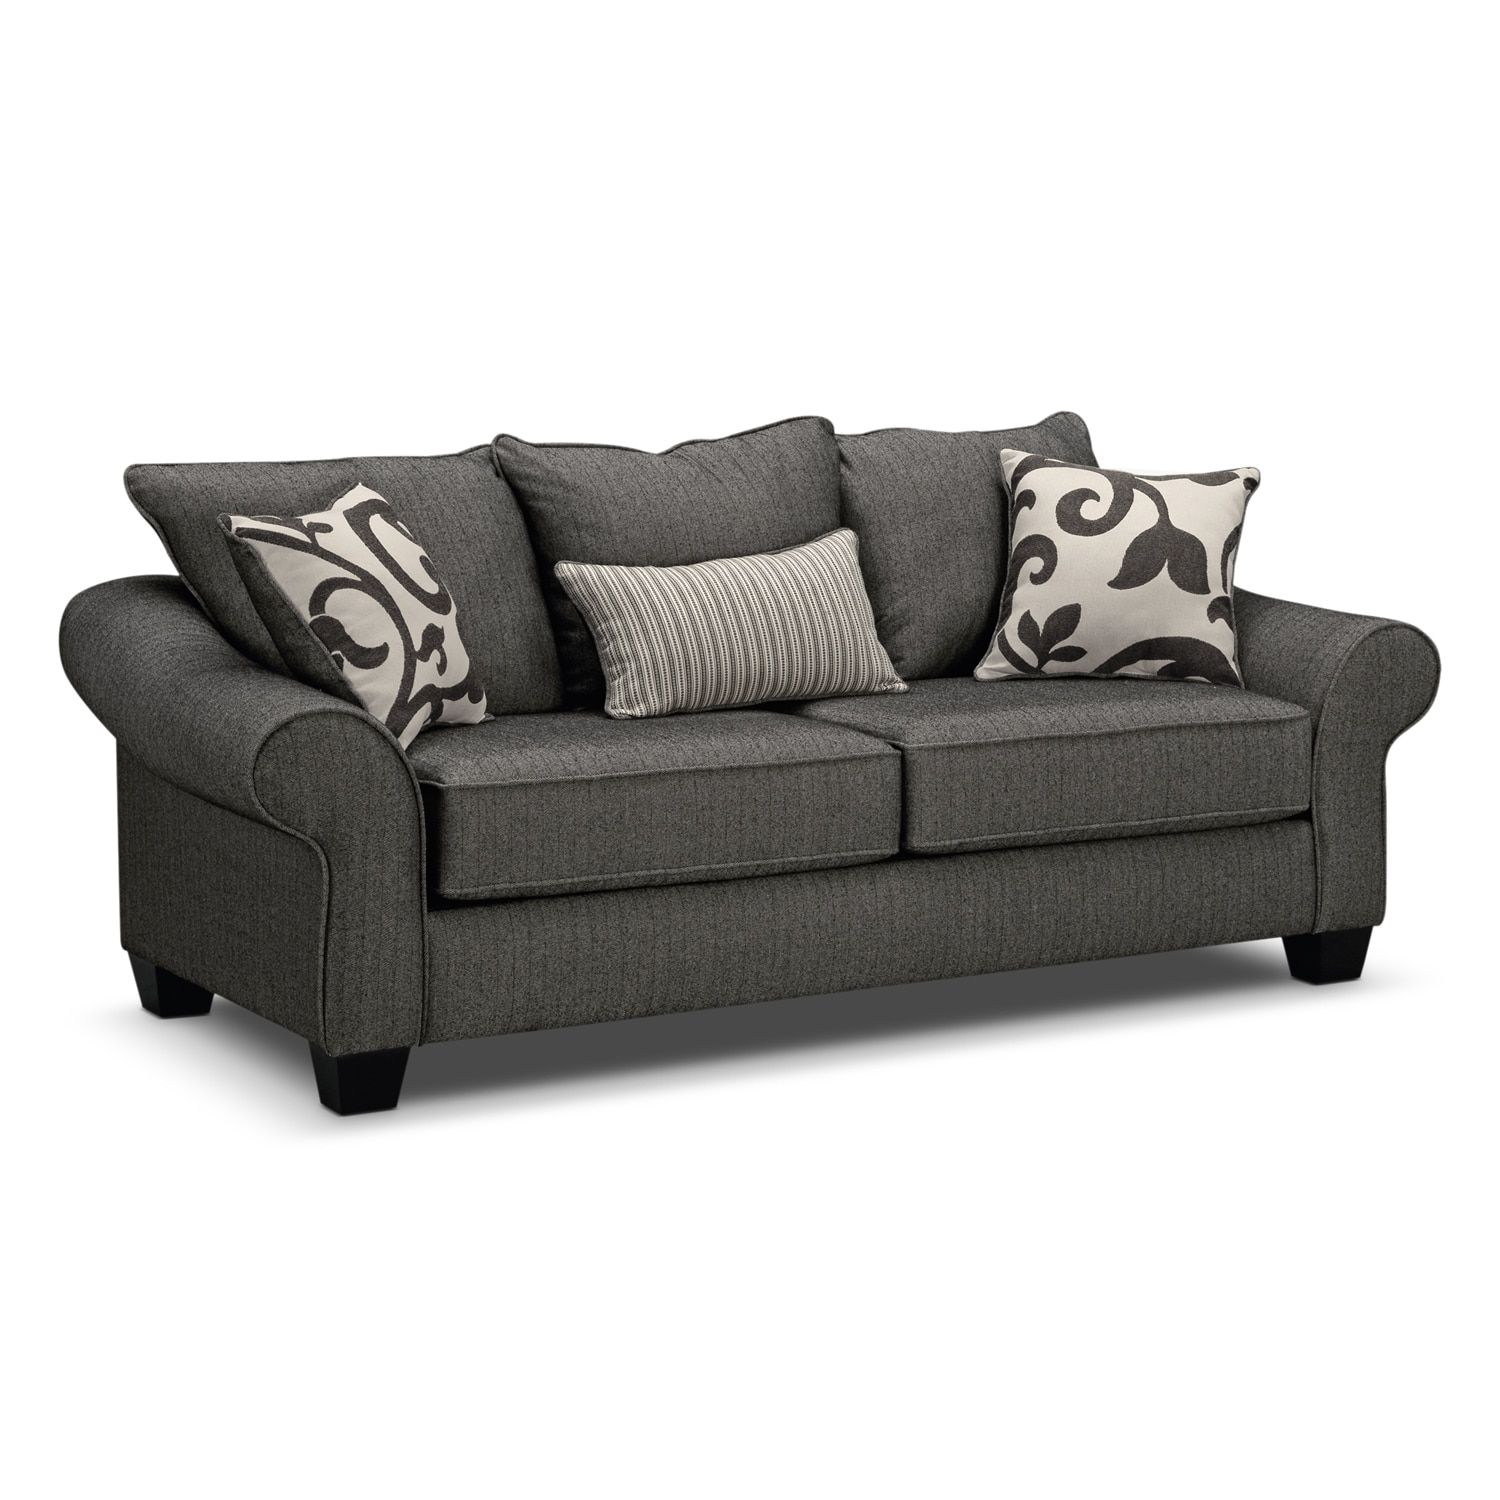 Pin By Sofacouchs On Sofas Amp Couches Full Sleeper Sofa